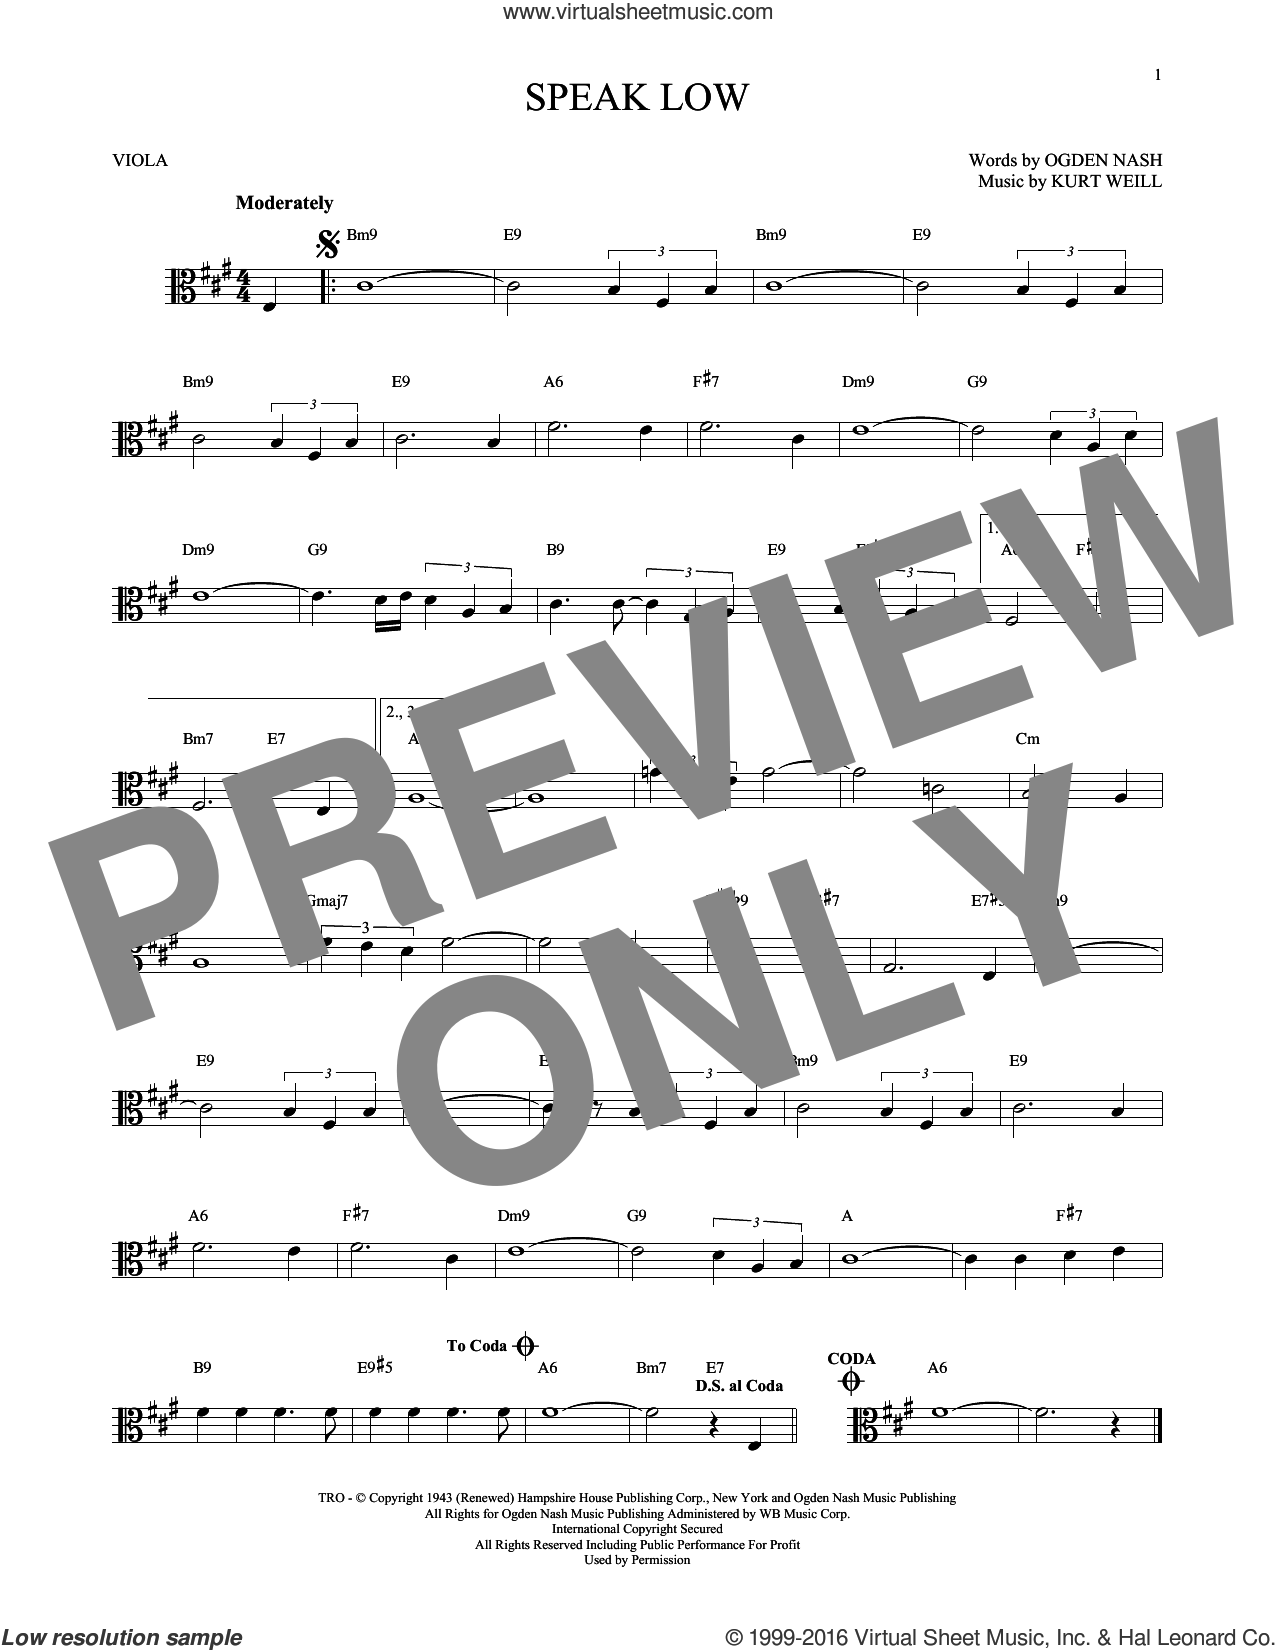 Speak Low sheet music for viola solo by Kurt Weill and Ogden Nash, intermediate. Score Image Preview.